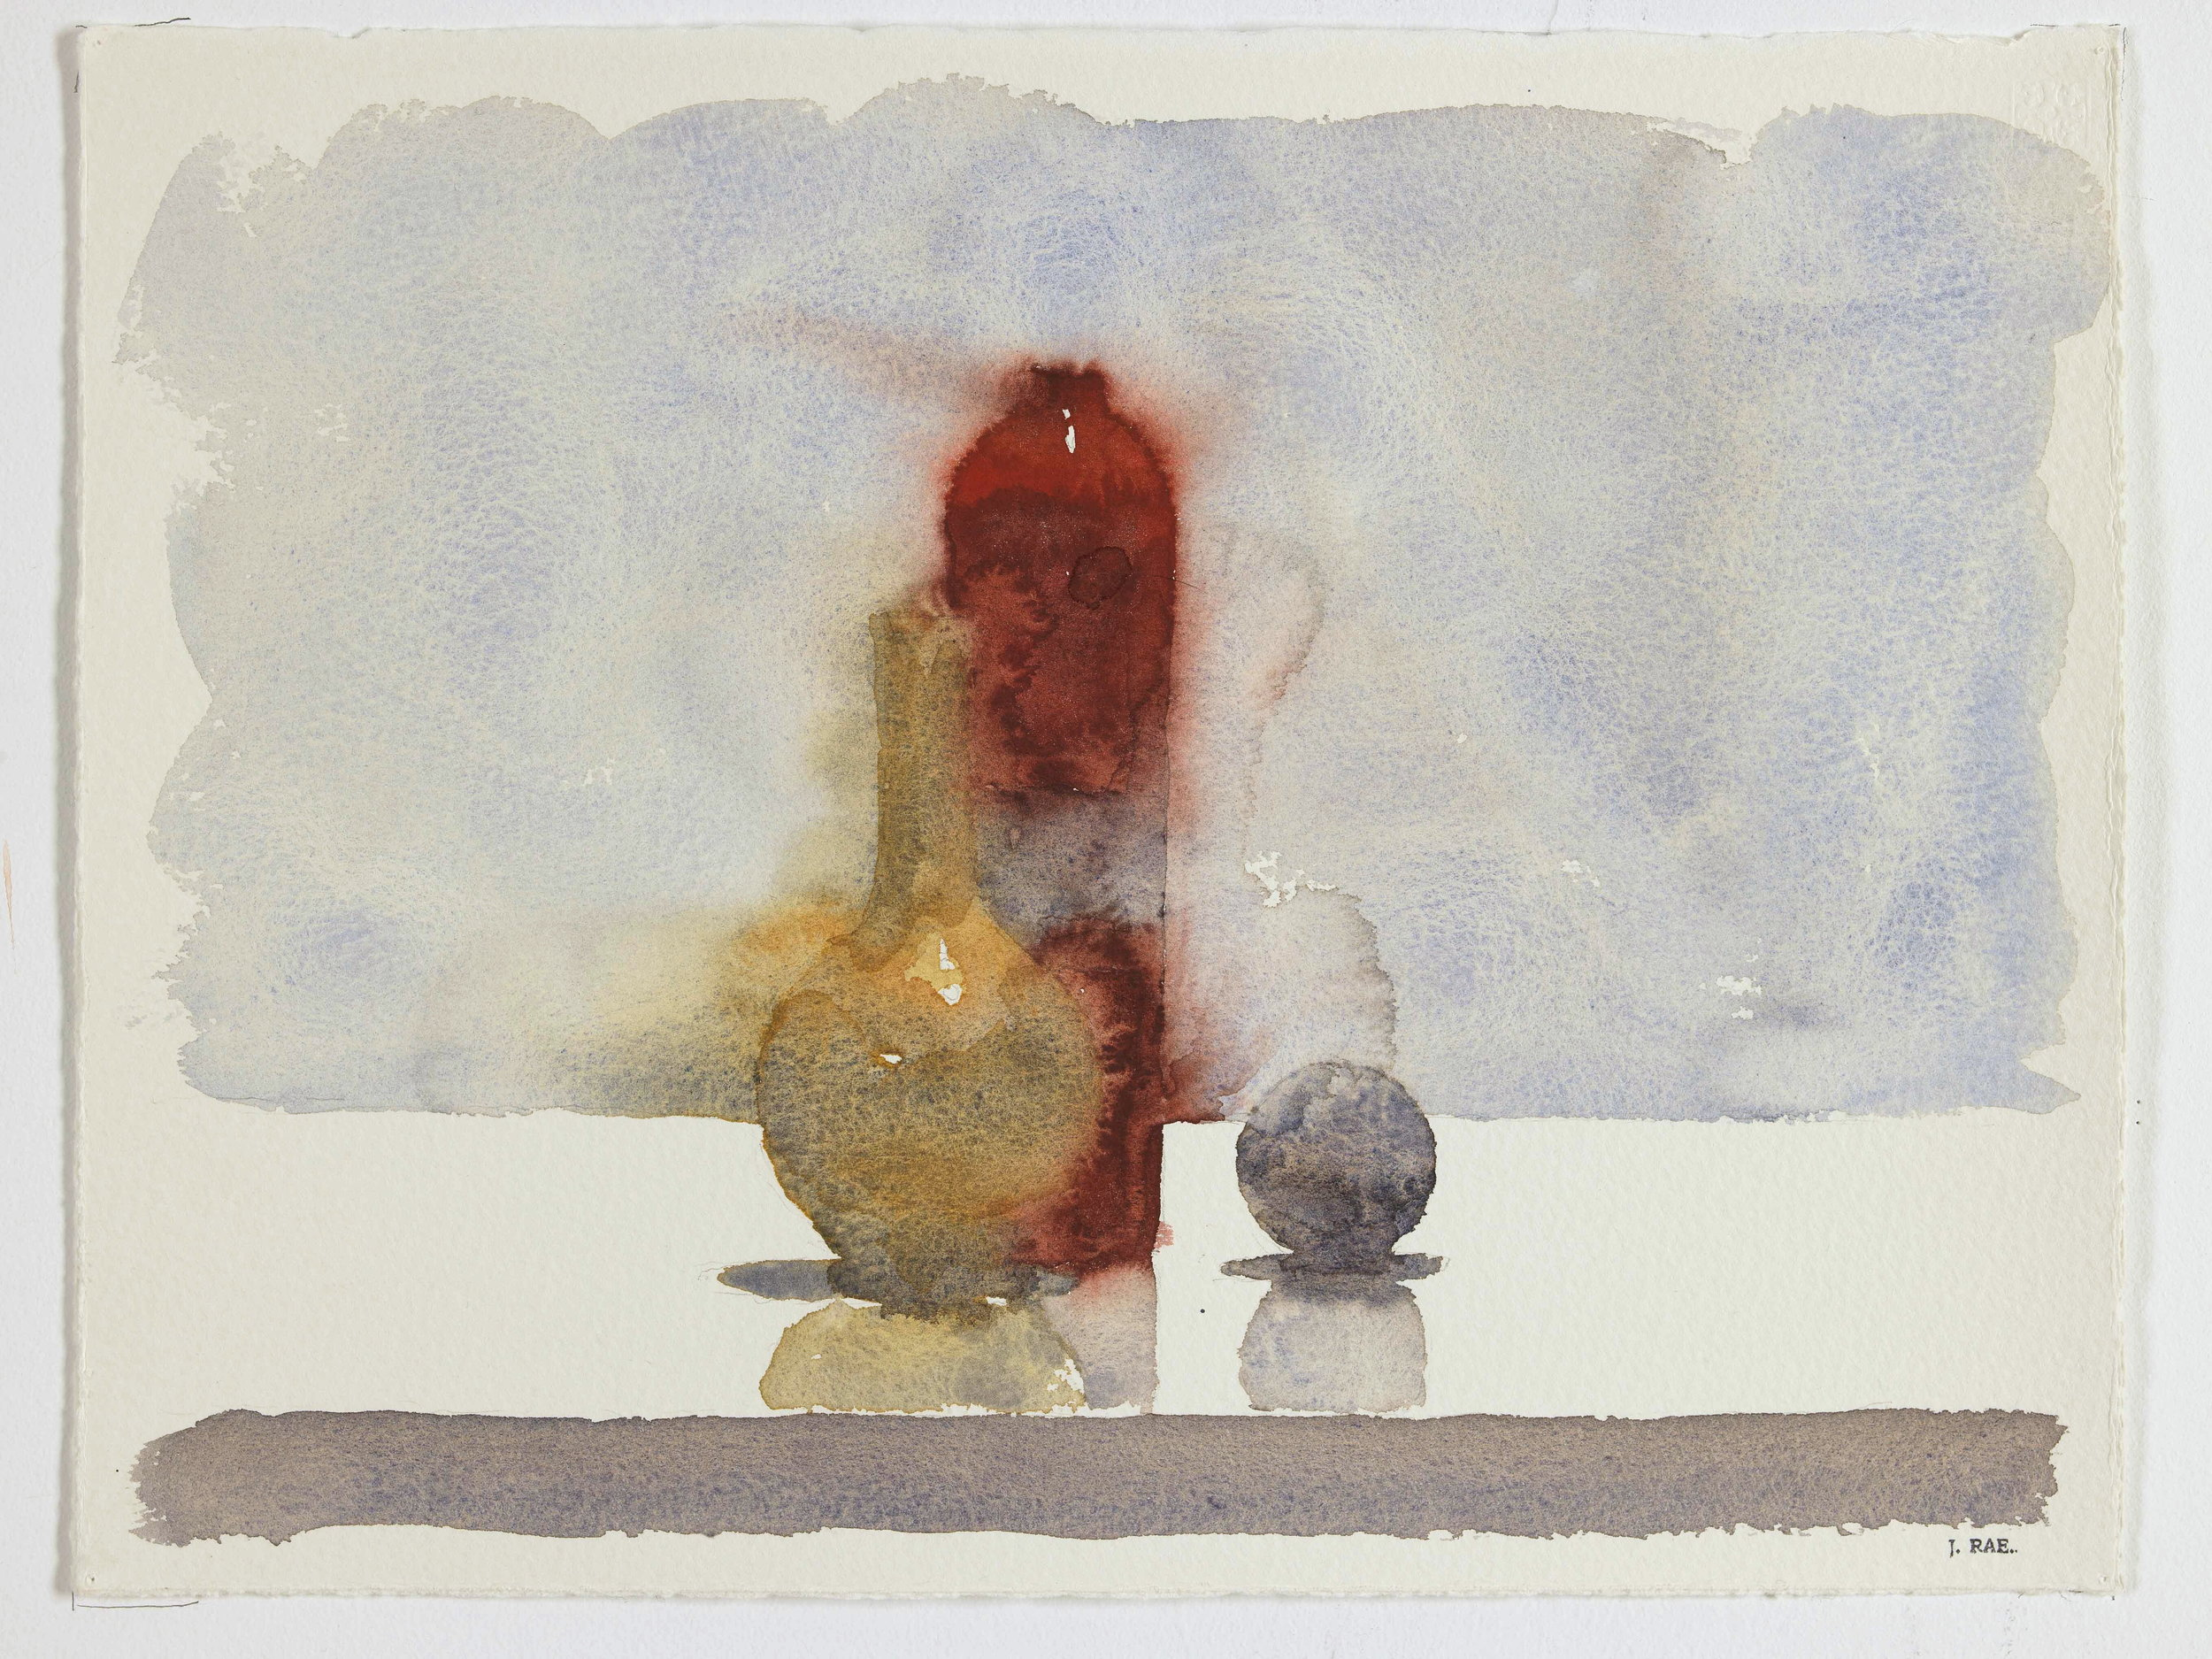 WCSL112, 2010, water colour on paper, 38 x 29cm.